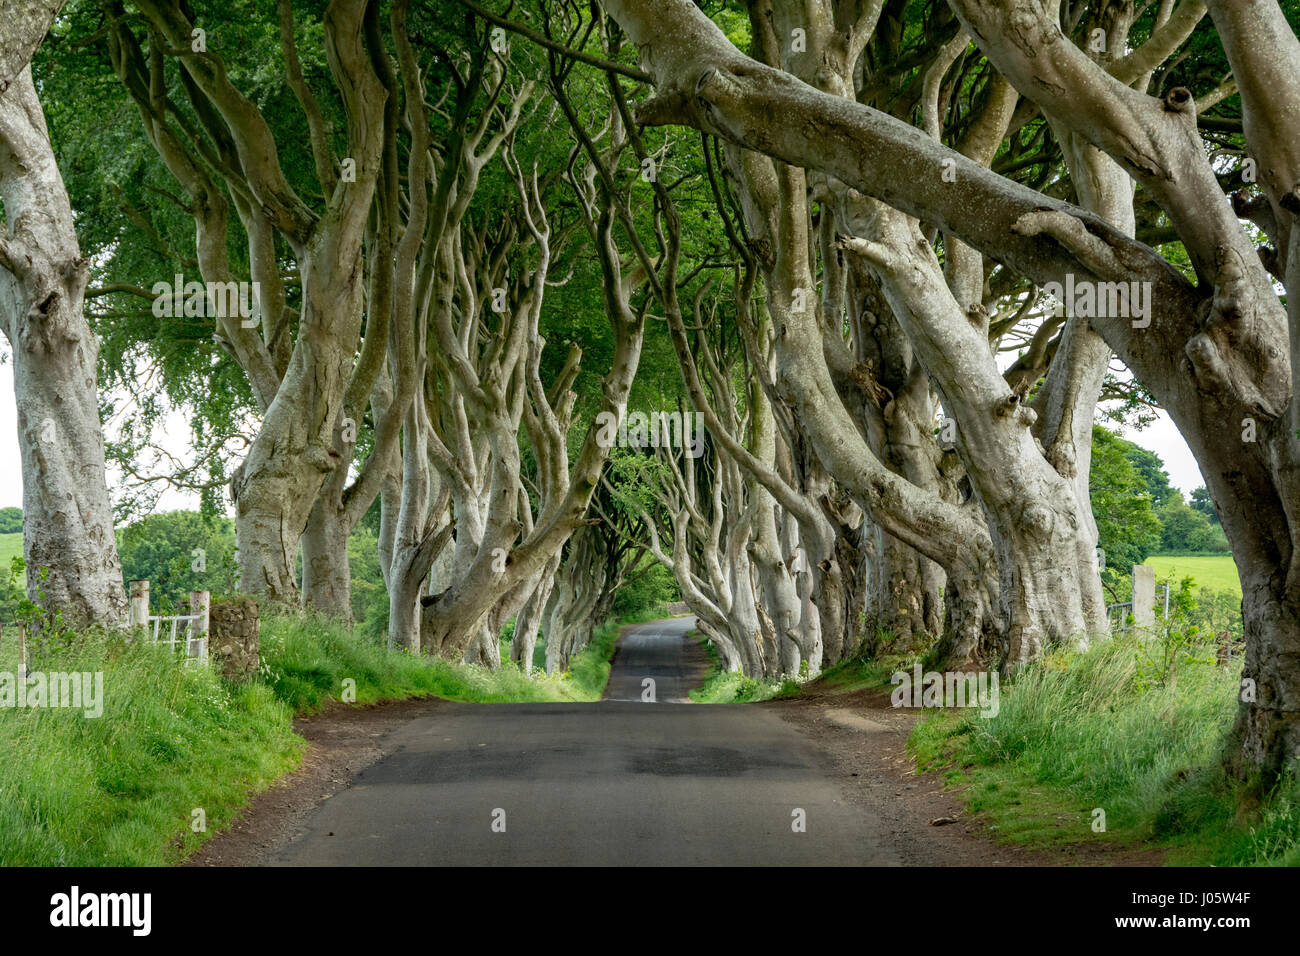 The Dark Hedges, near Armoy, County Antrim, Northern Ireland, UK Stock Photo